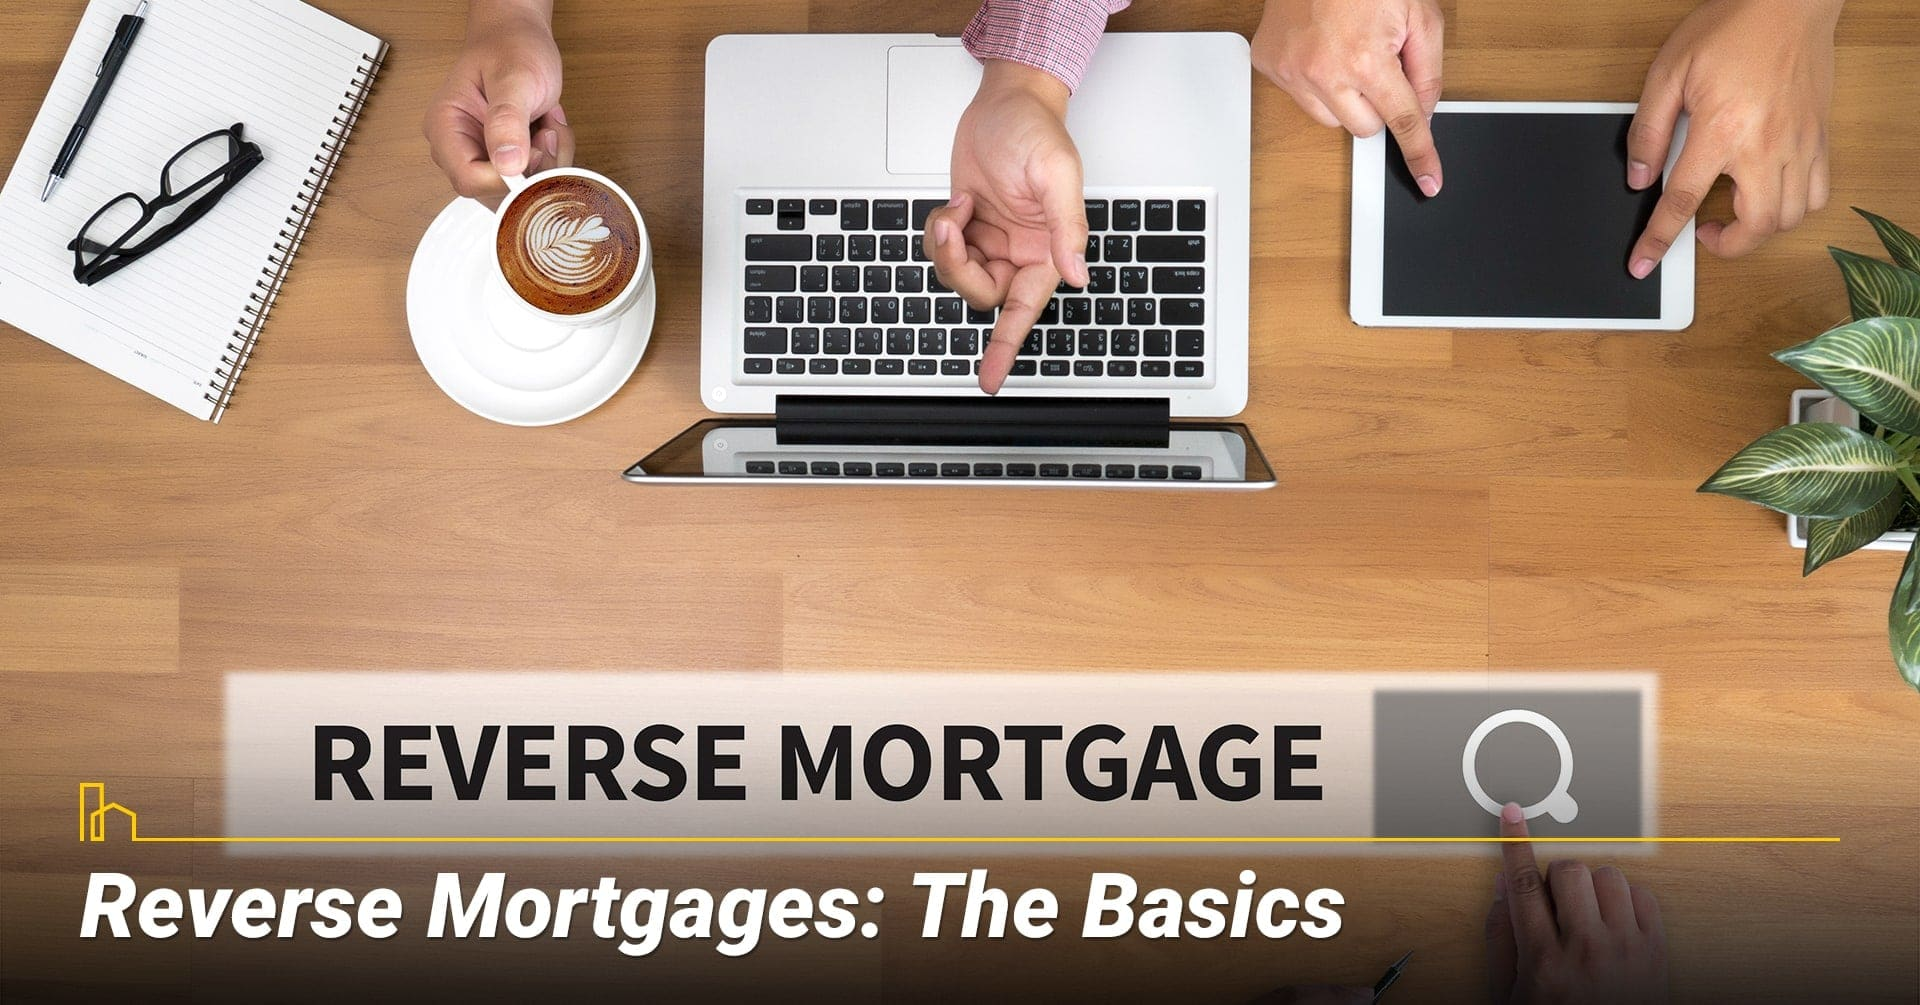 Reverse Mortgages: What are The Basics? Basic information about reverse mortgage